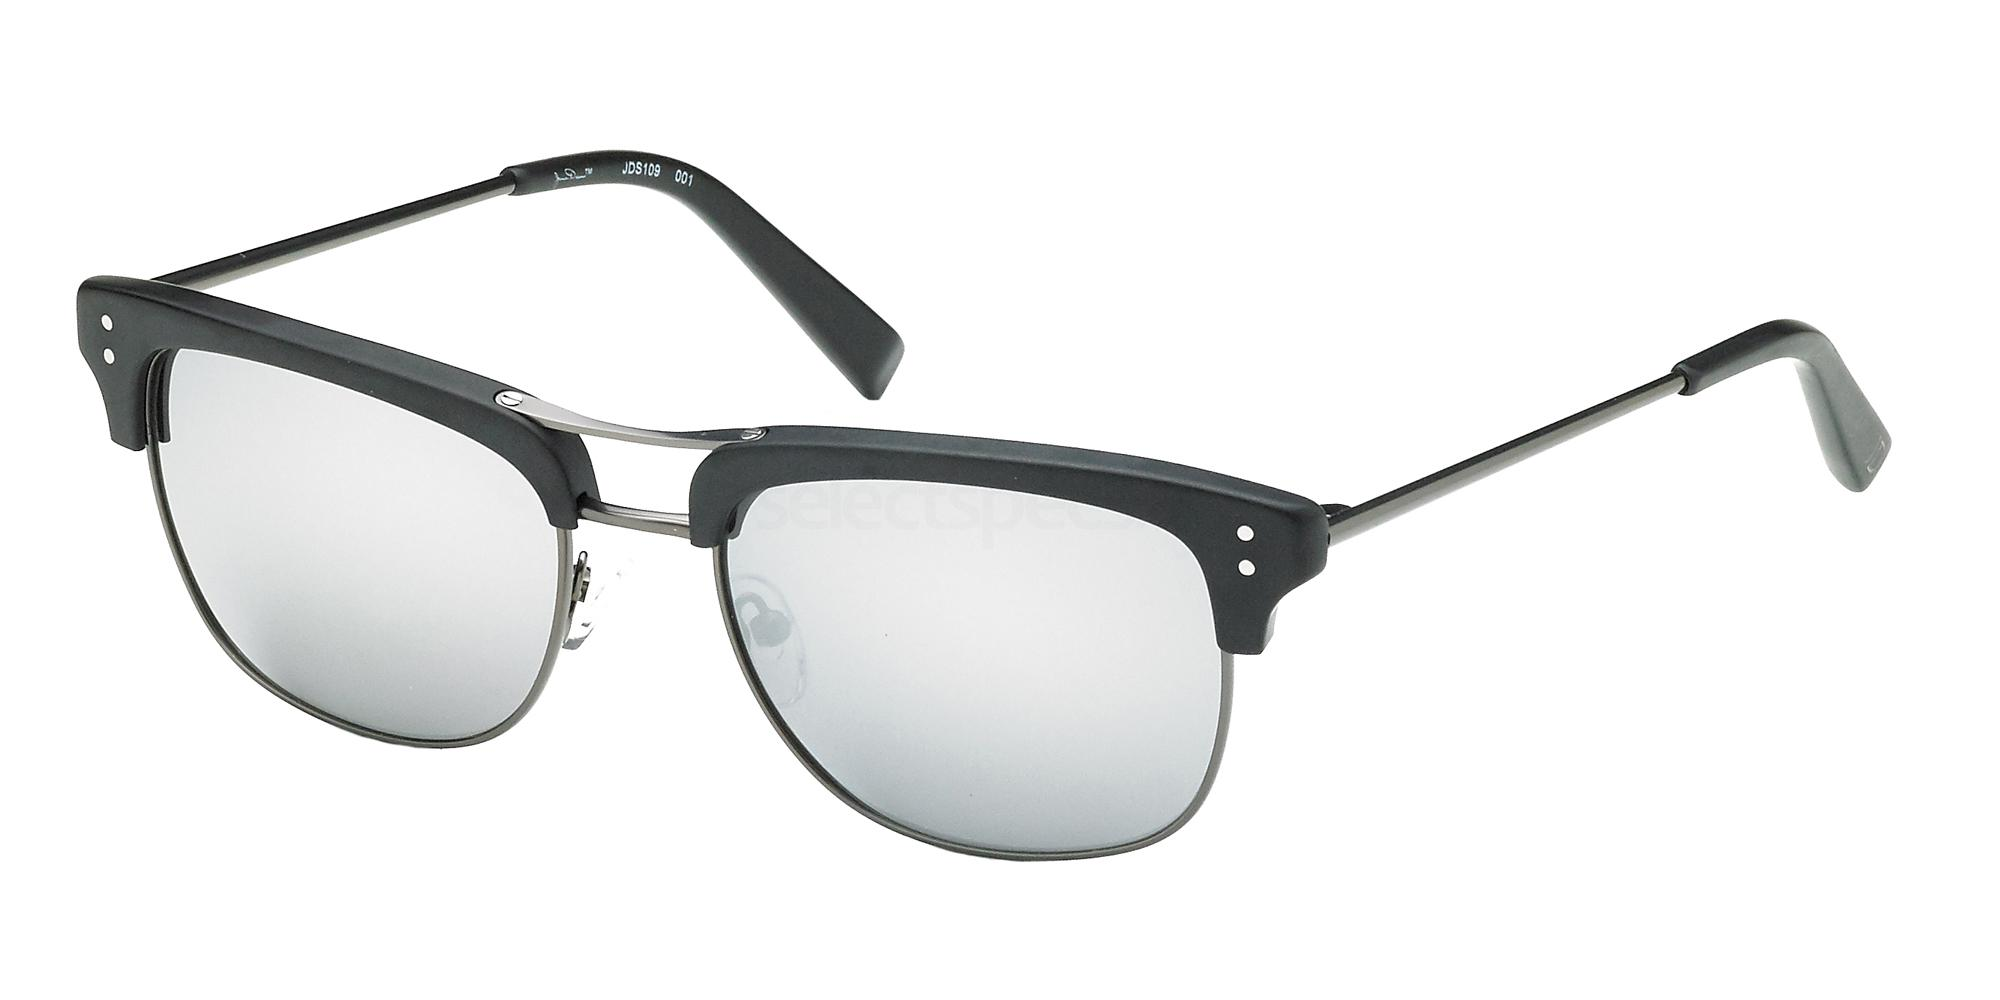 80fa3640124a James Dean Sunglasses JDS109 Matte Black-Green With Silver Flash ...